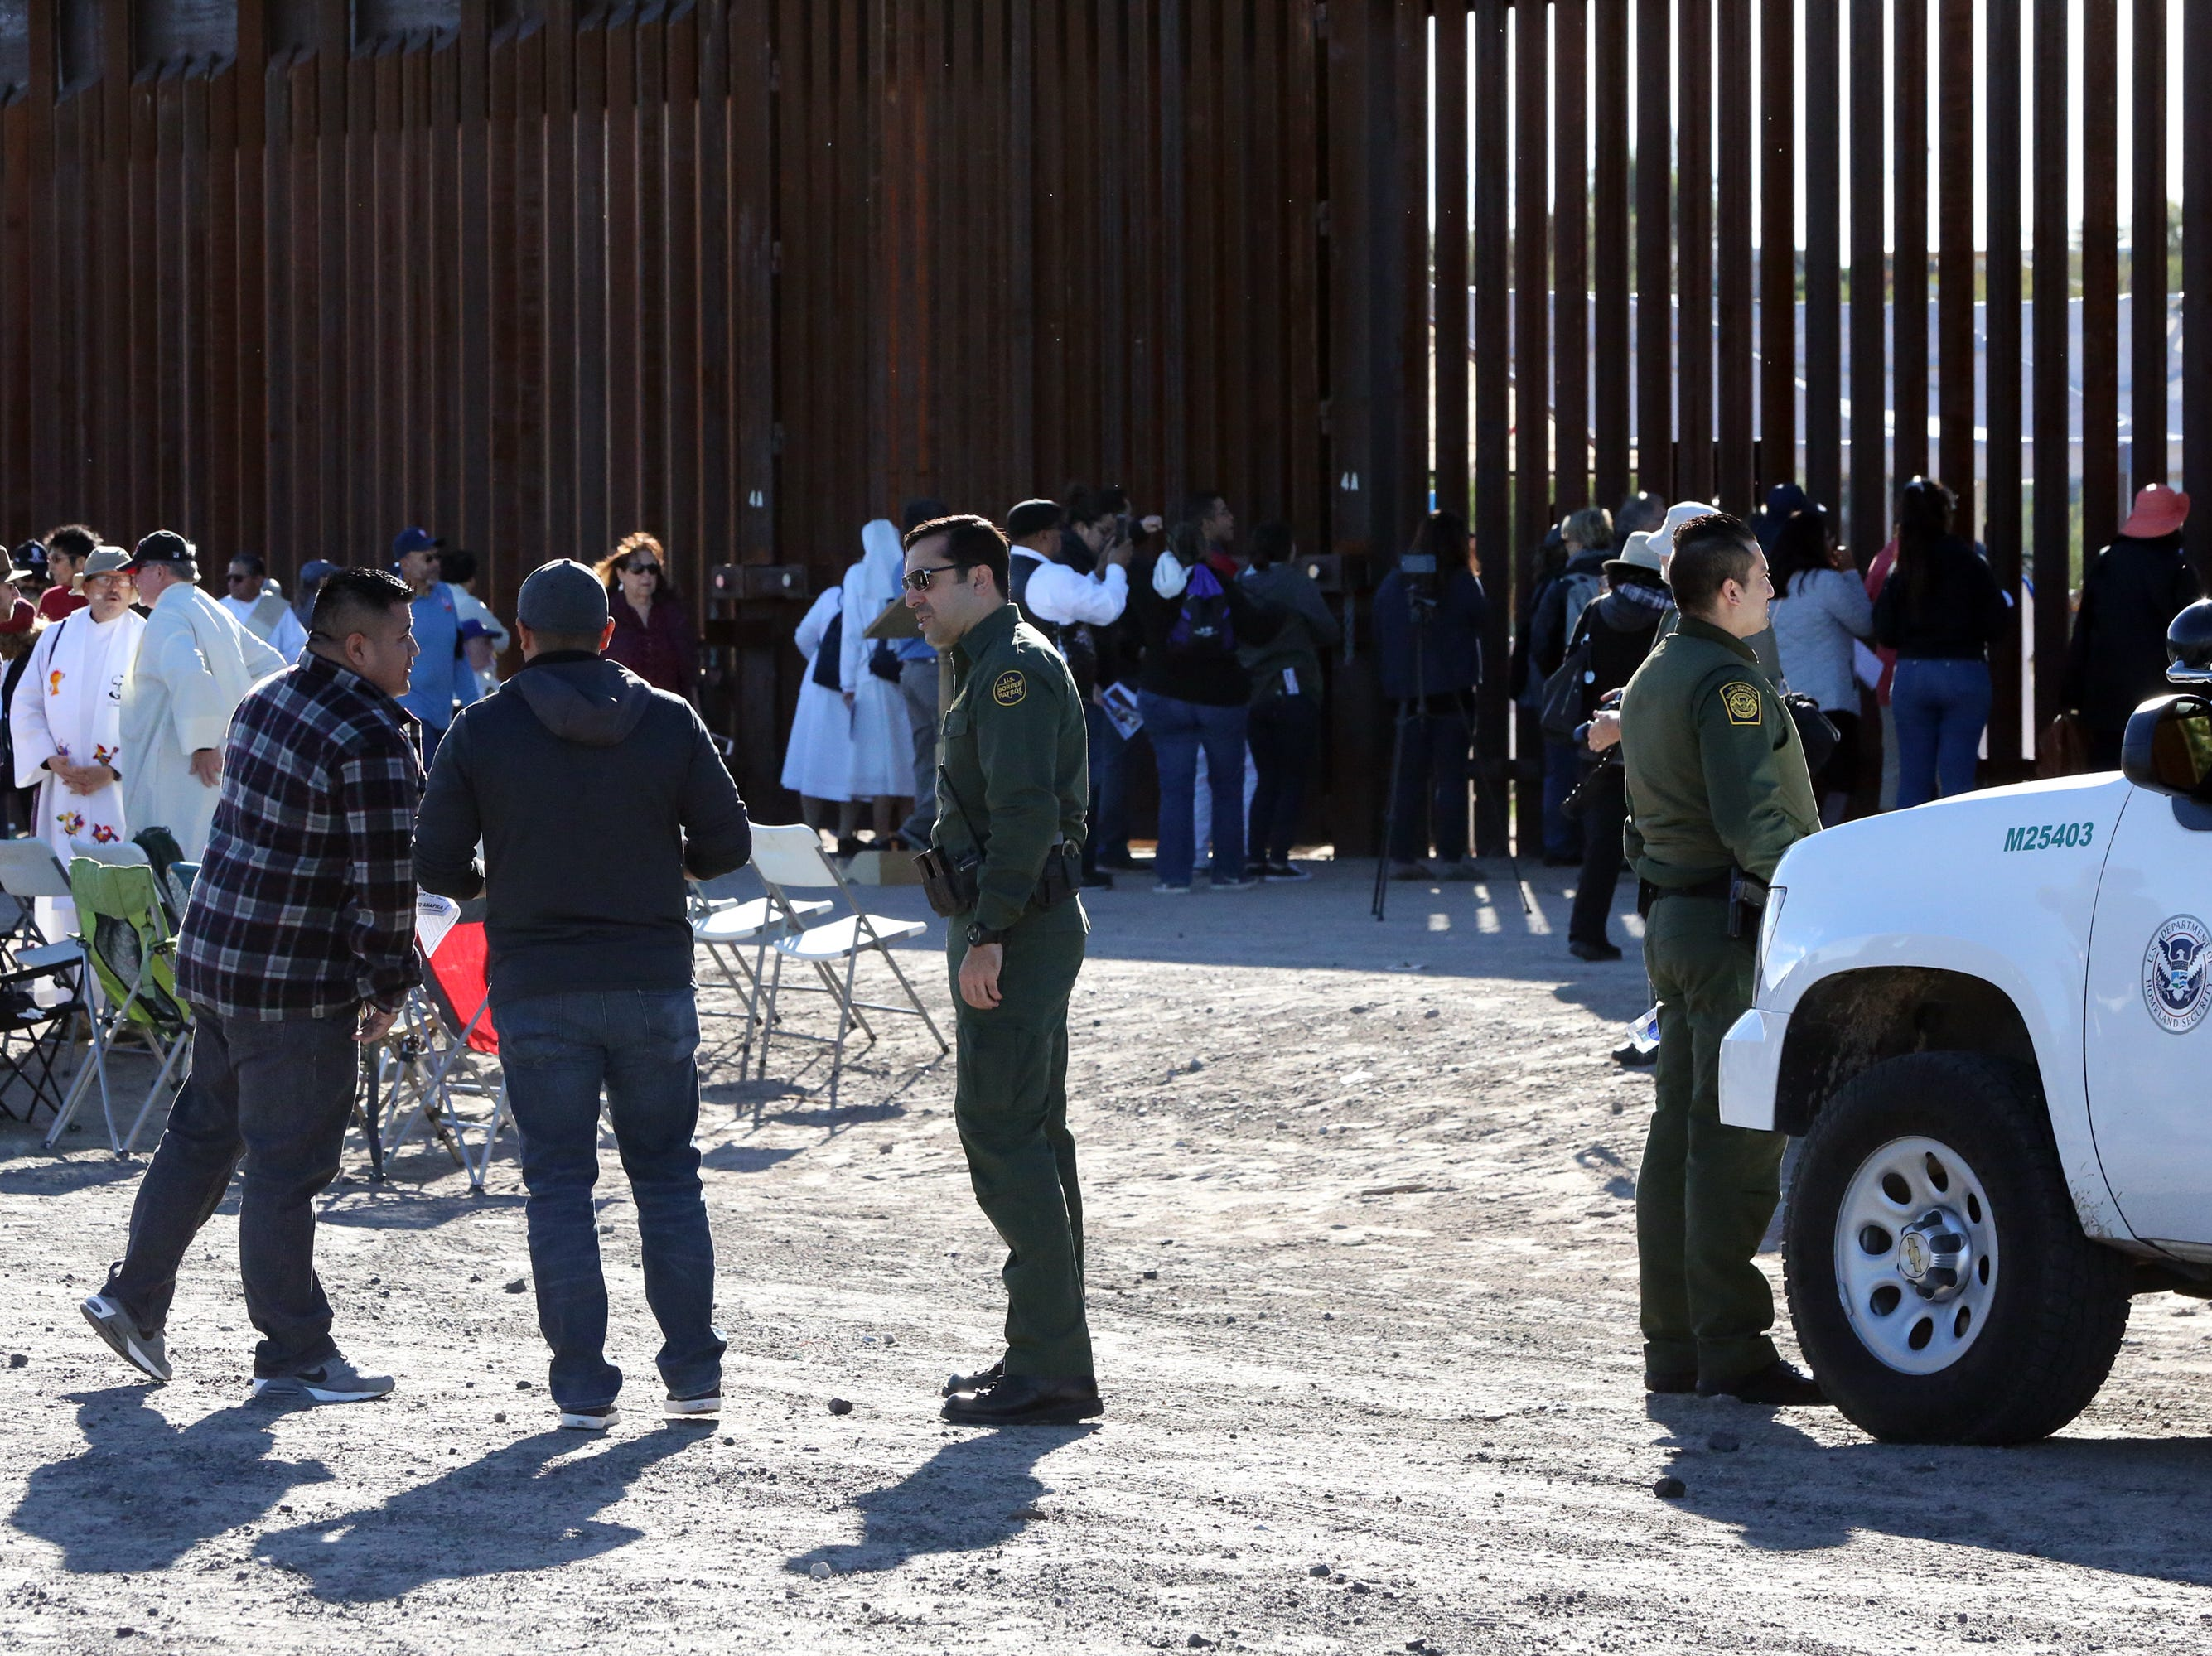 U.S. Border Patrol agents talk with some of the Border Mass participants Saturday.